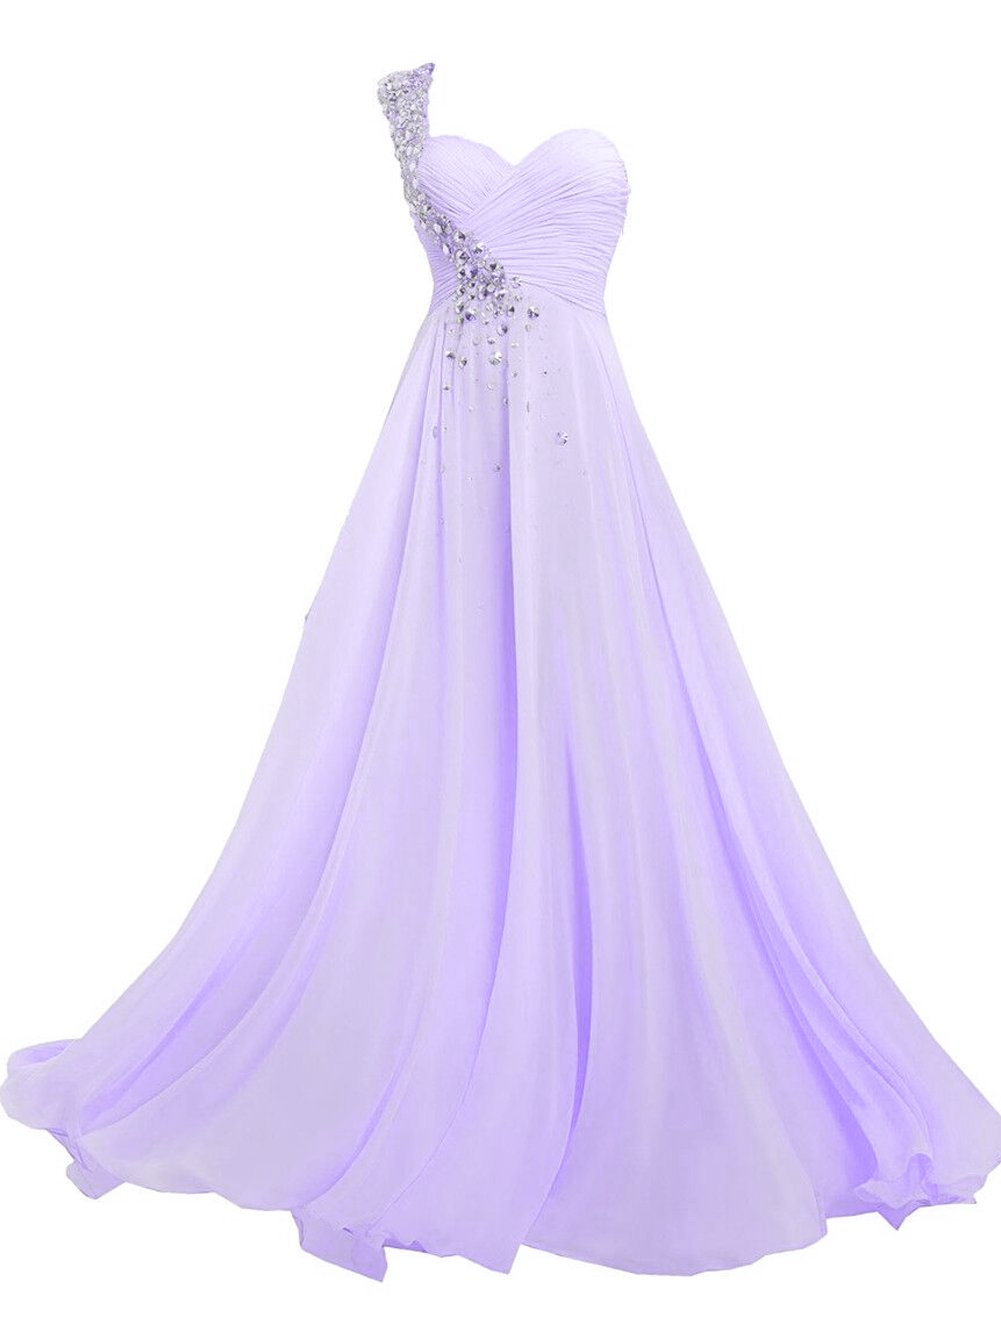 Available at Amazon: JAEDEN Bridesmaid Dresses Prom Dress Long Chiffon One Shoulder Evening Gown Party Dress